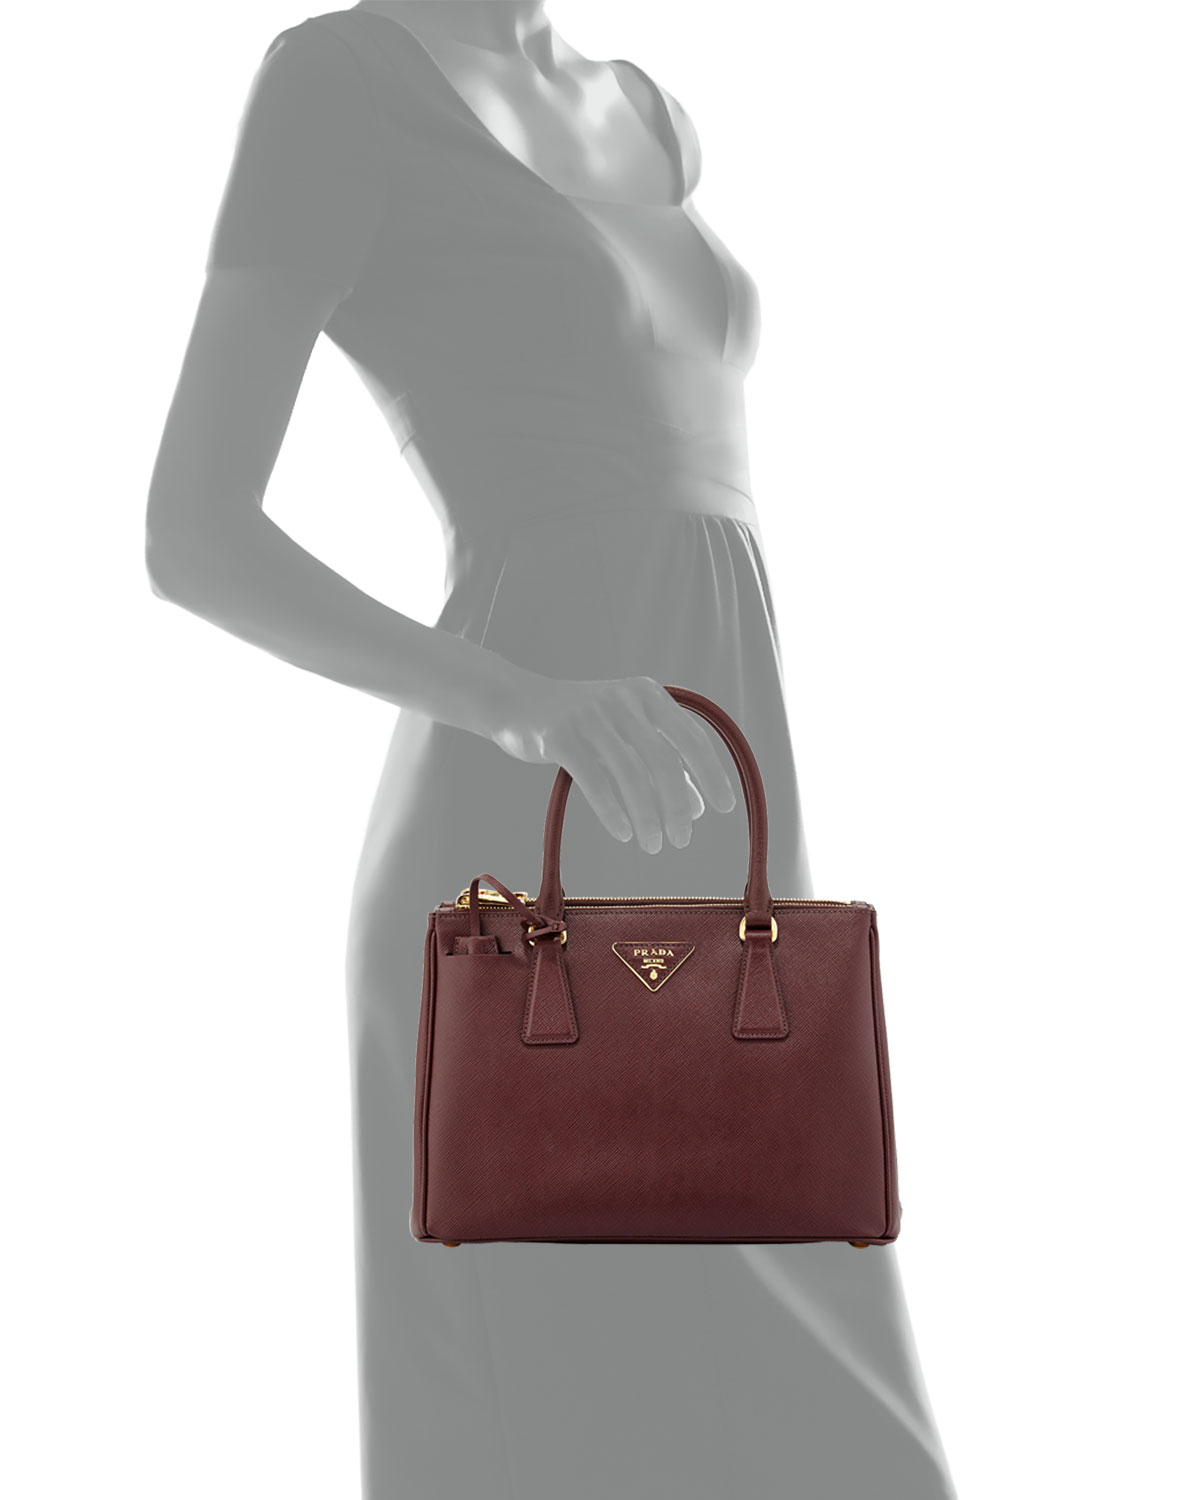 6d4a46bd94ce ... order lyst prada saffiano small executive tote bag in purple 5b5f5 9218e